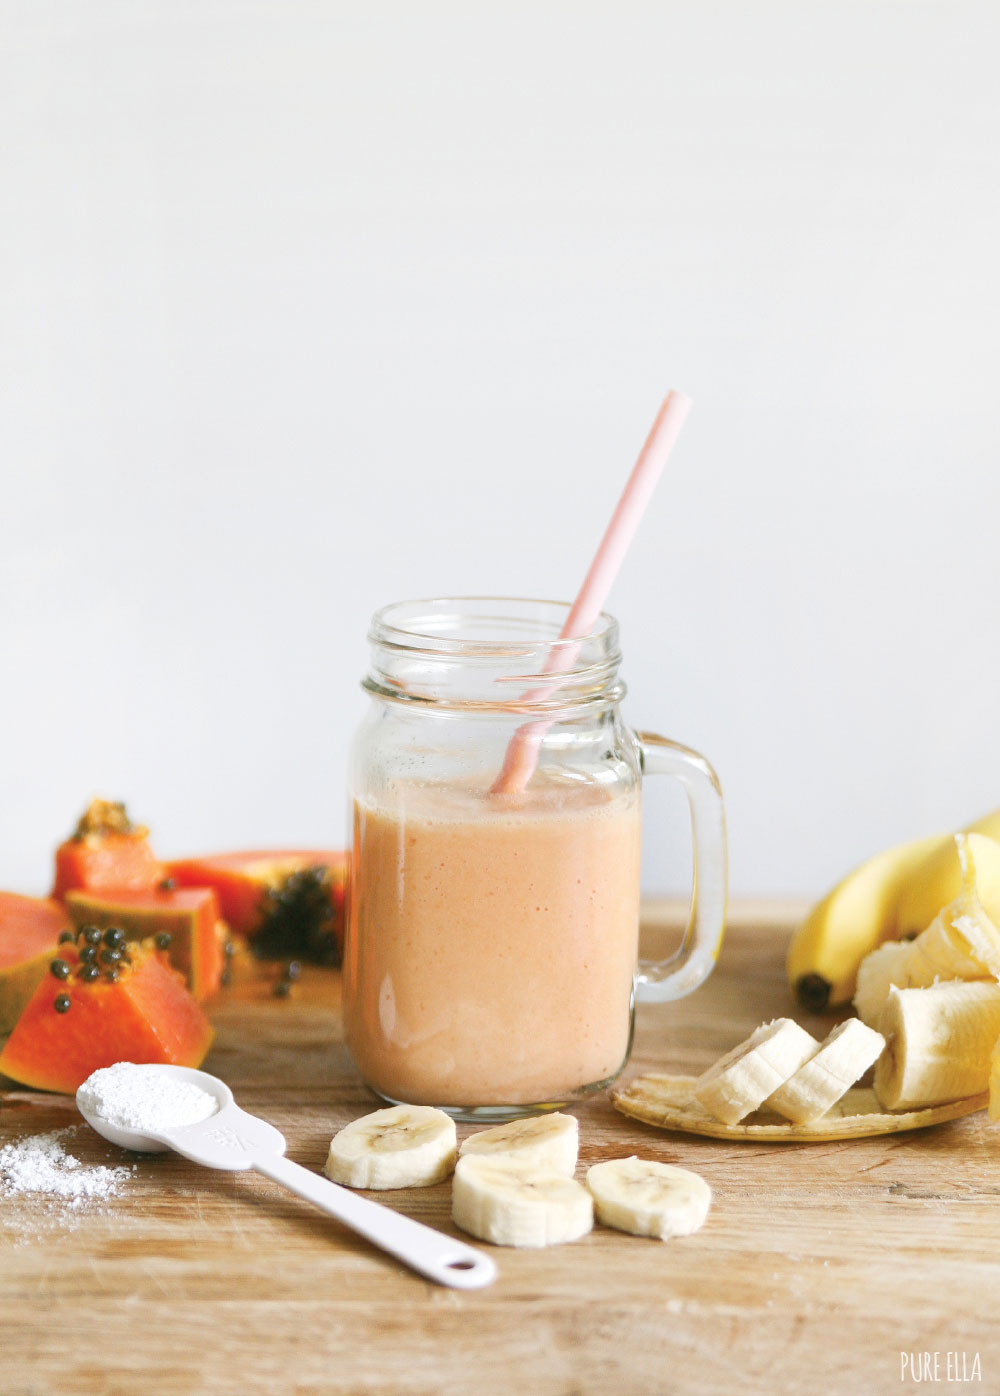 Pure-Ella-Natural-Vitality-Calm-Anti-Anxiety-Smoothie